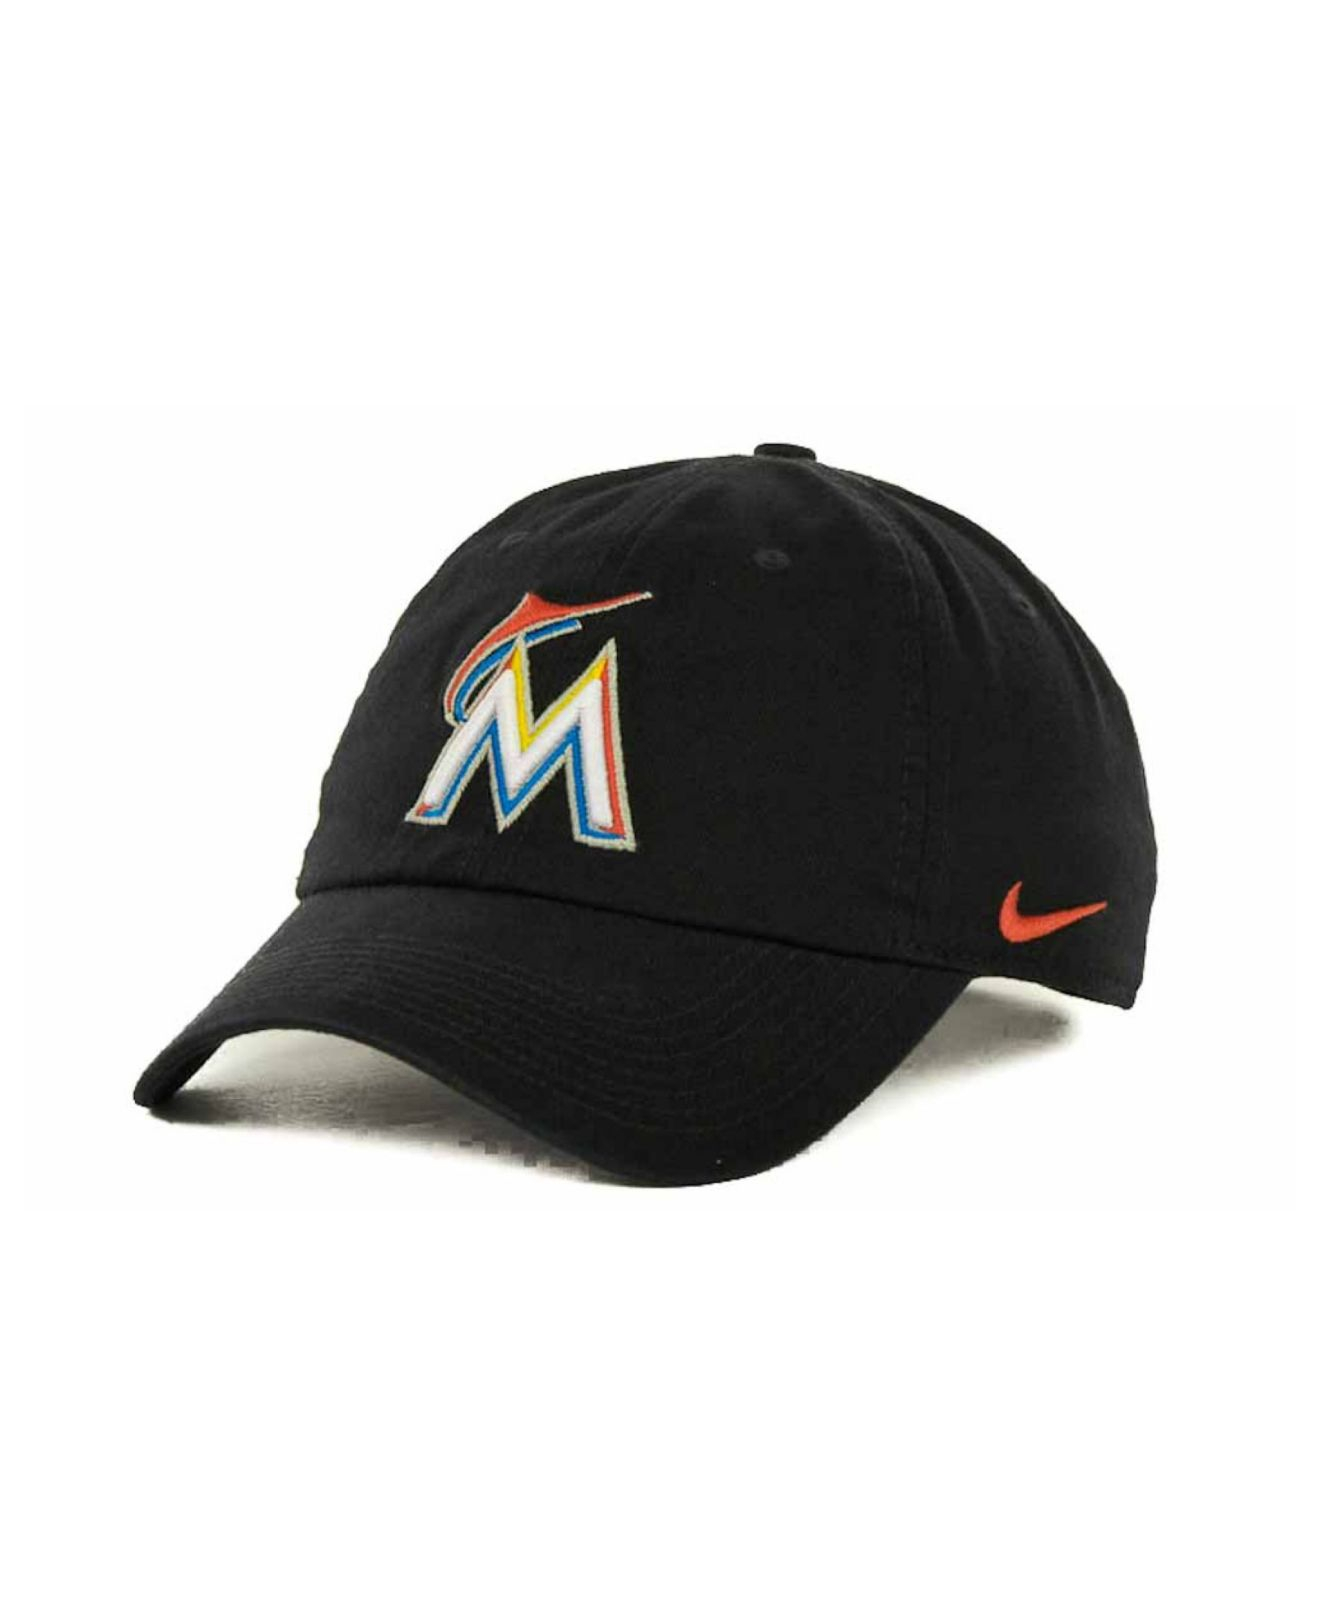 ... purchase lyst nike miami marlins stadium cap in black for men 3bc17  80639 a67b00ede476